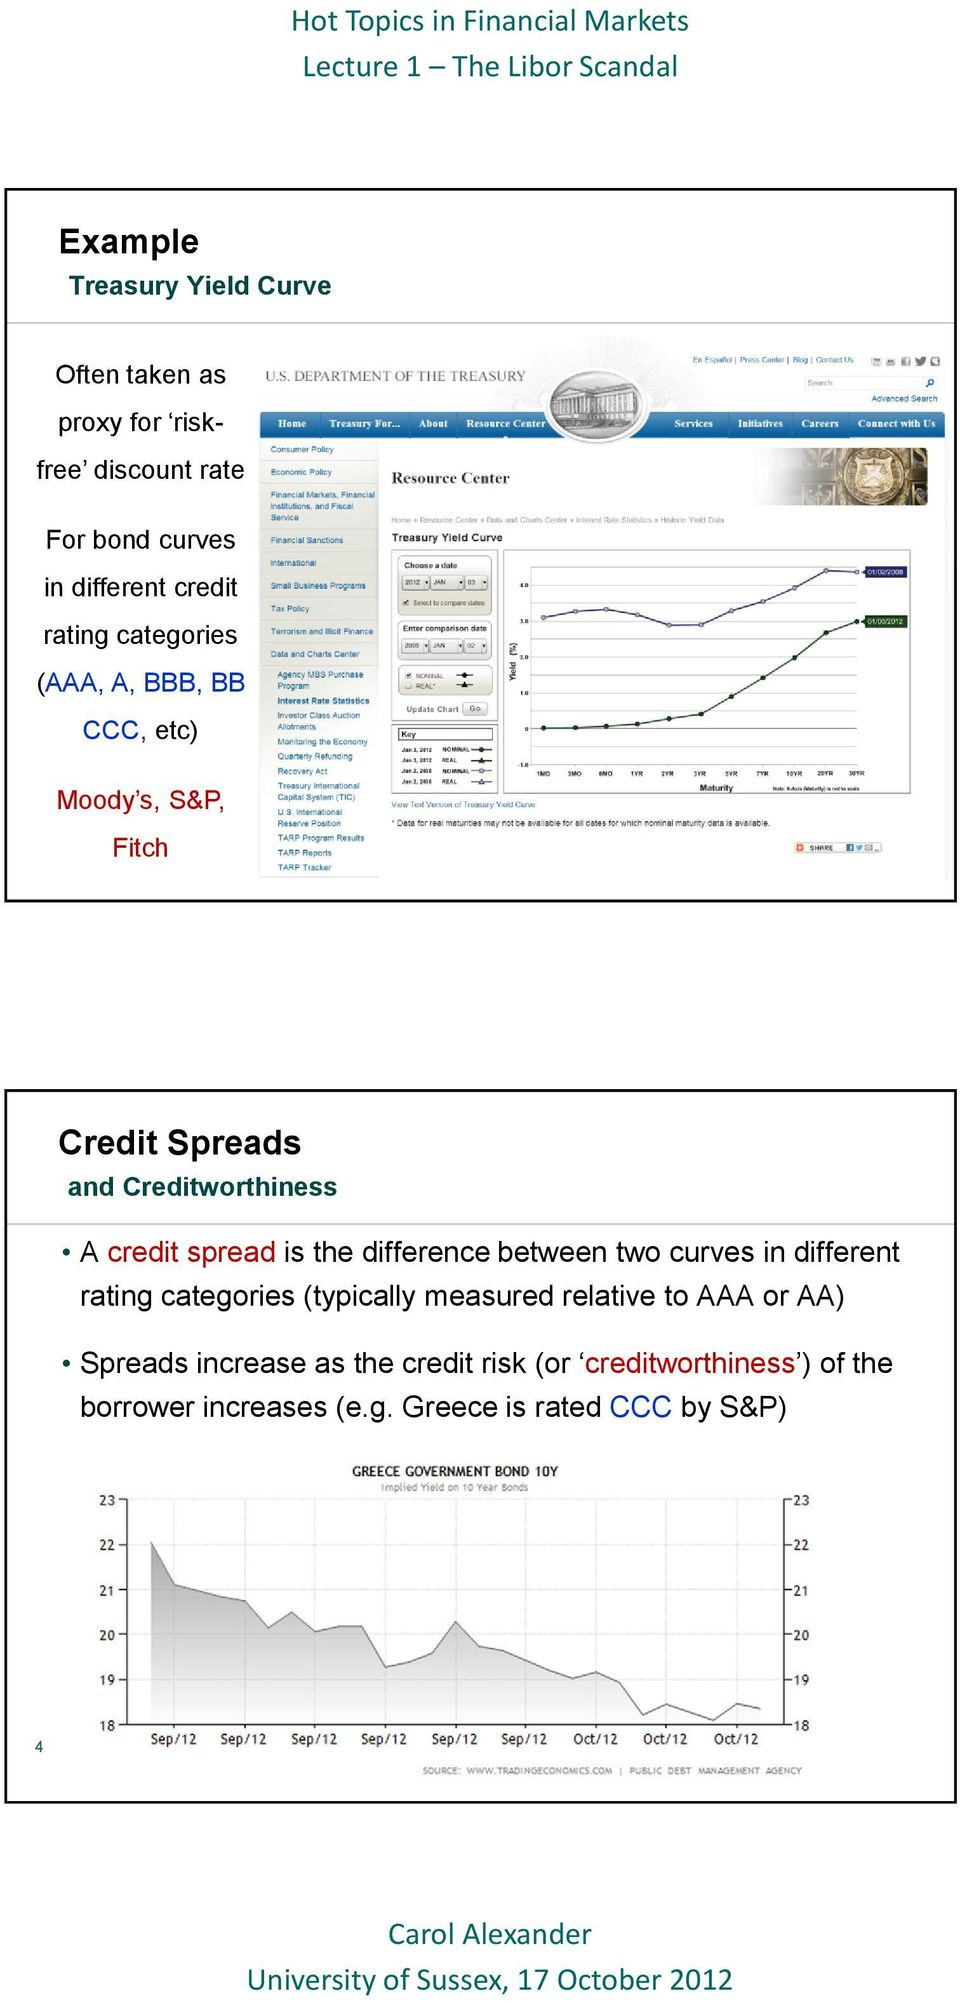 spread is the difference between two curves in different rating categories (typically measured relative to AAA or